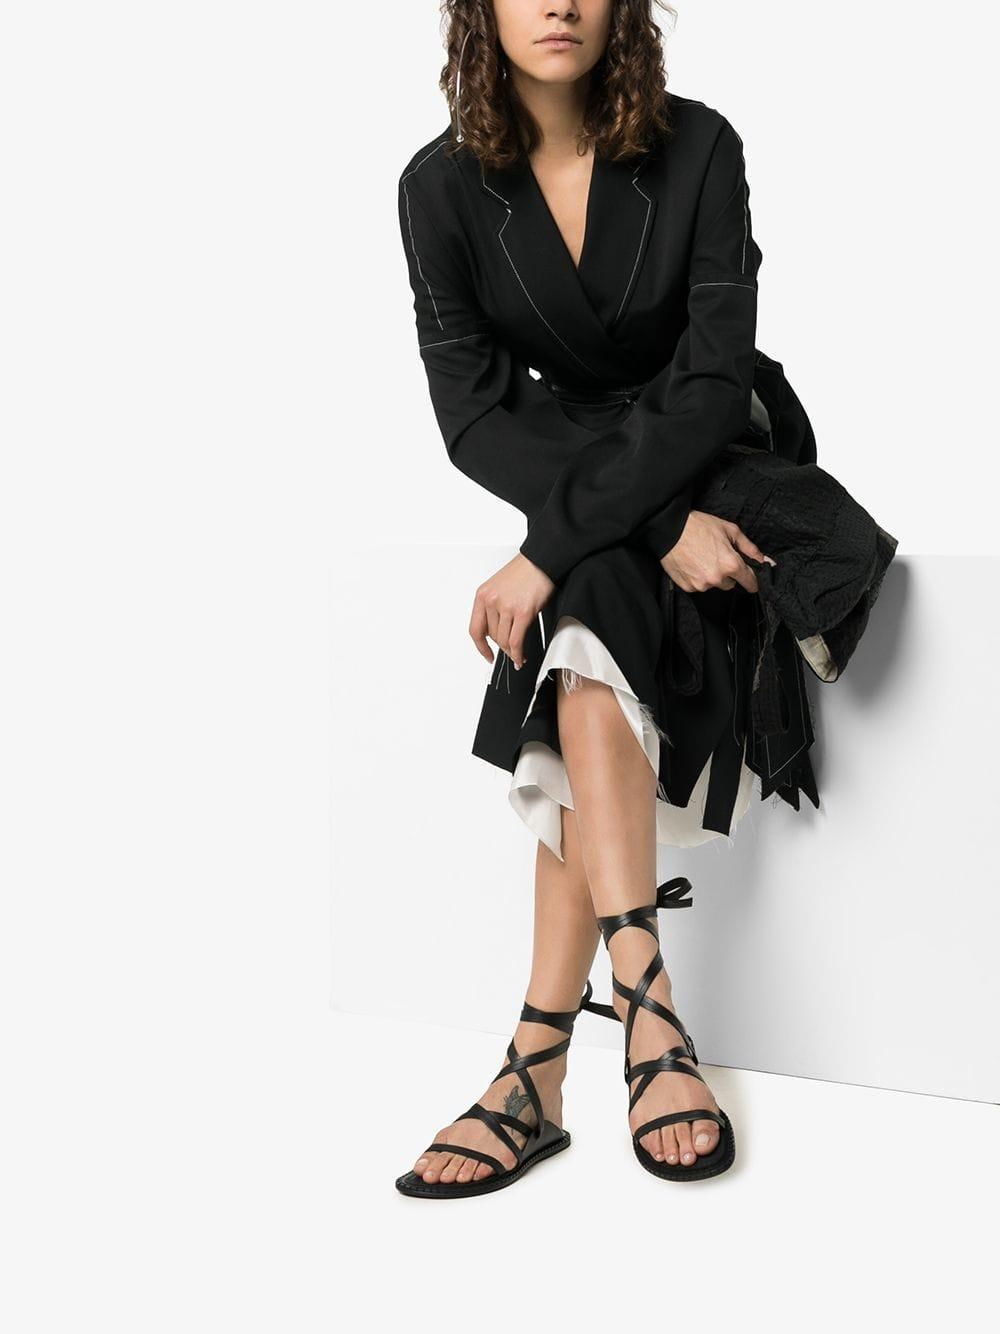 fde40be8f630 Ann Demeulemeester Black Lace Up Leather Sandals in Black - Lyst